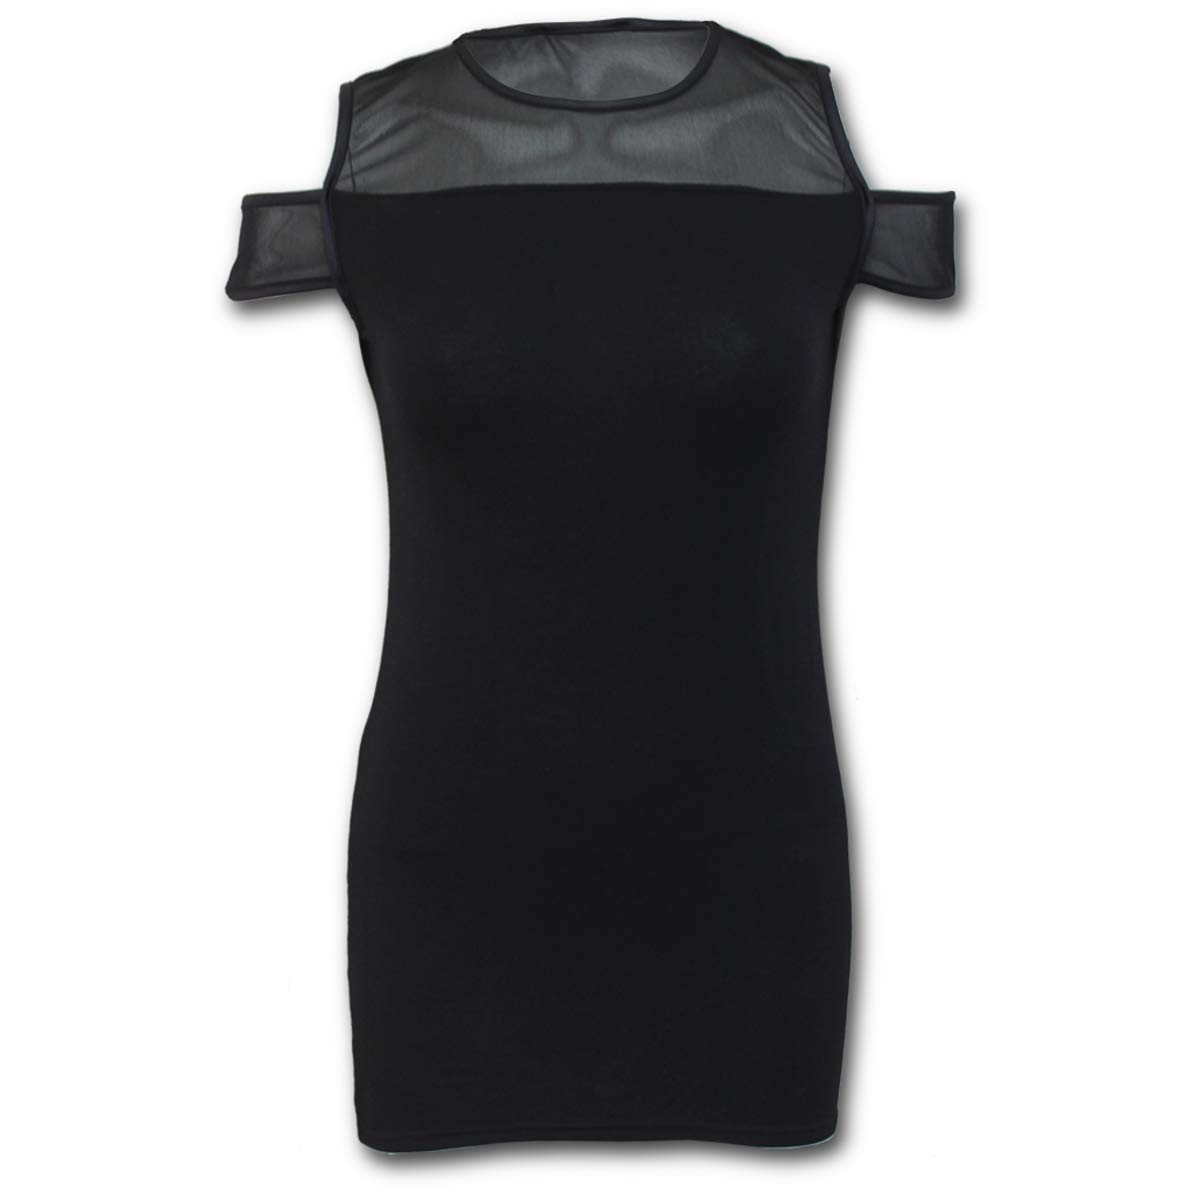 Available at Amazon: Spiral - Women's - Gothic Elegance - Drop Sleeve Piped Dress Black